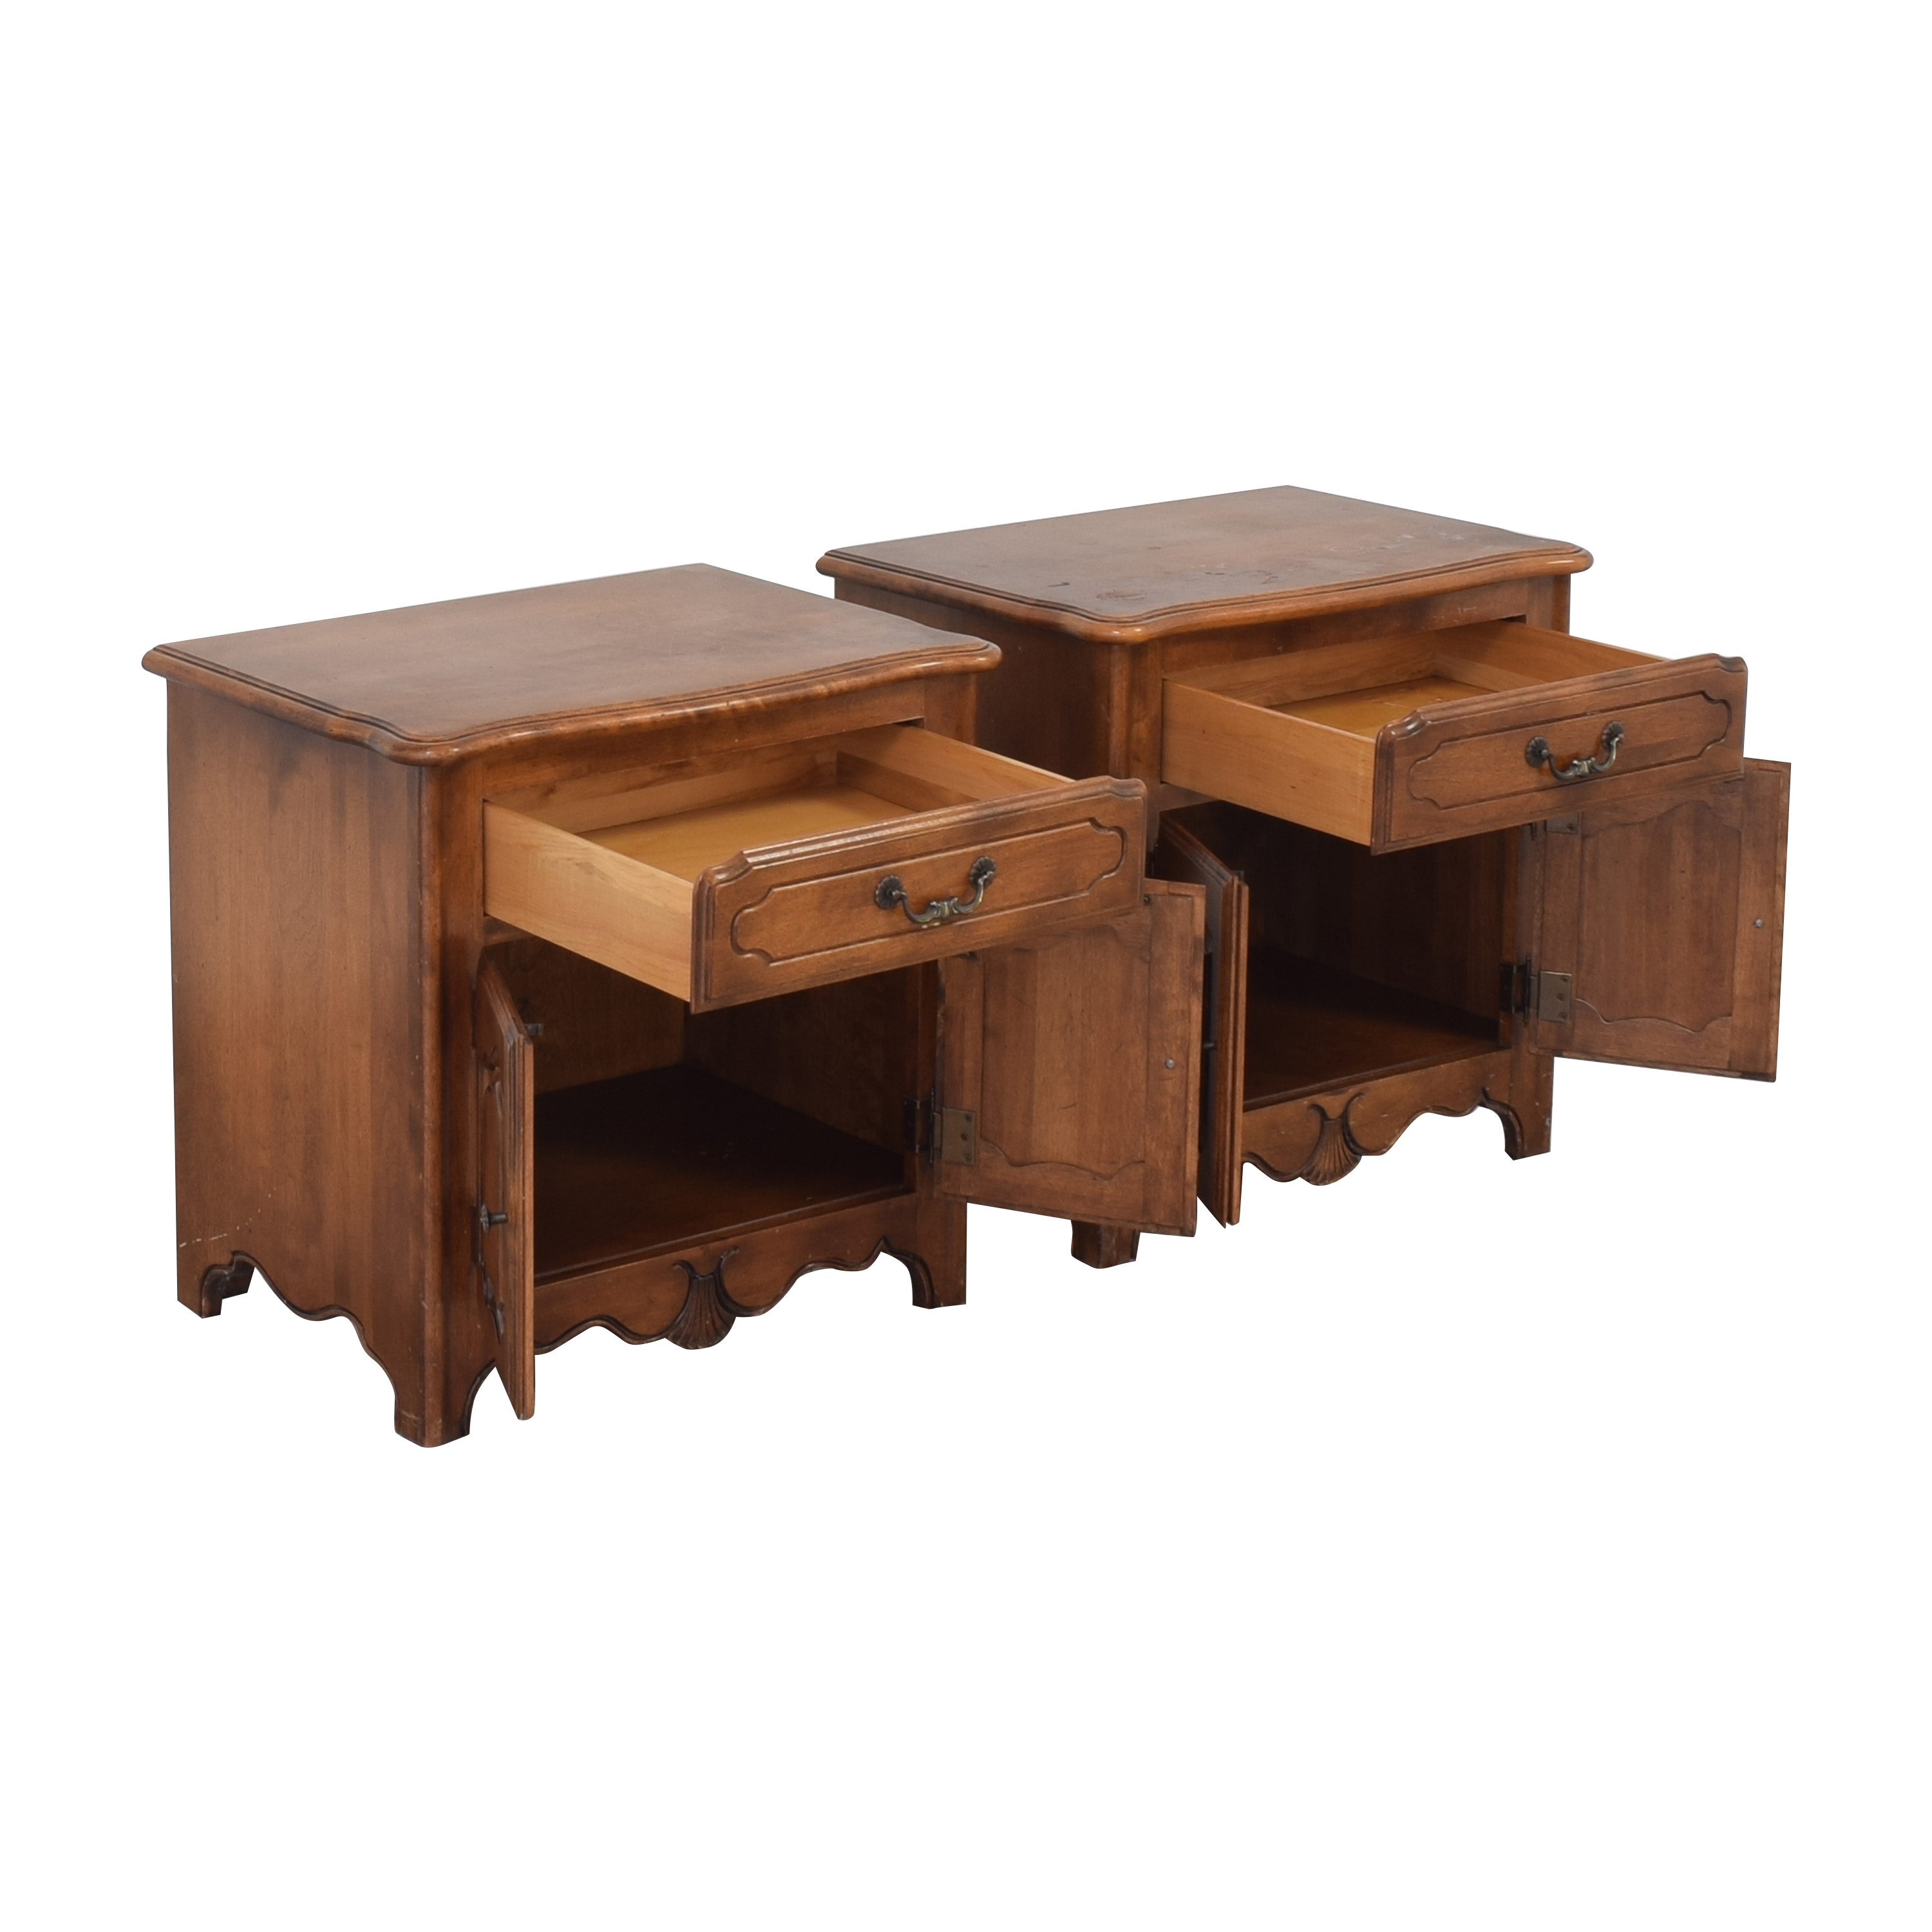 Ethan Allen Ethan Allen French Country Nightstands price